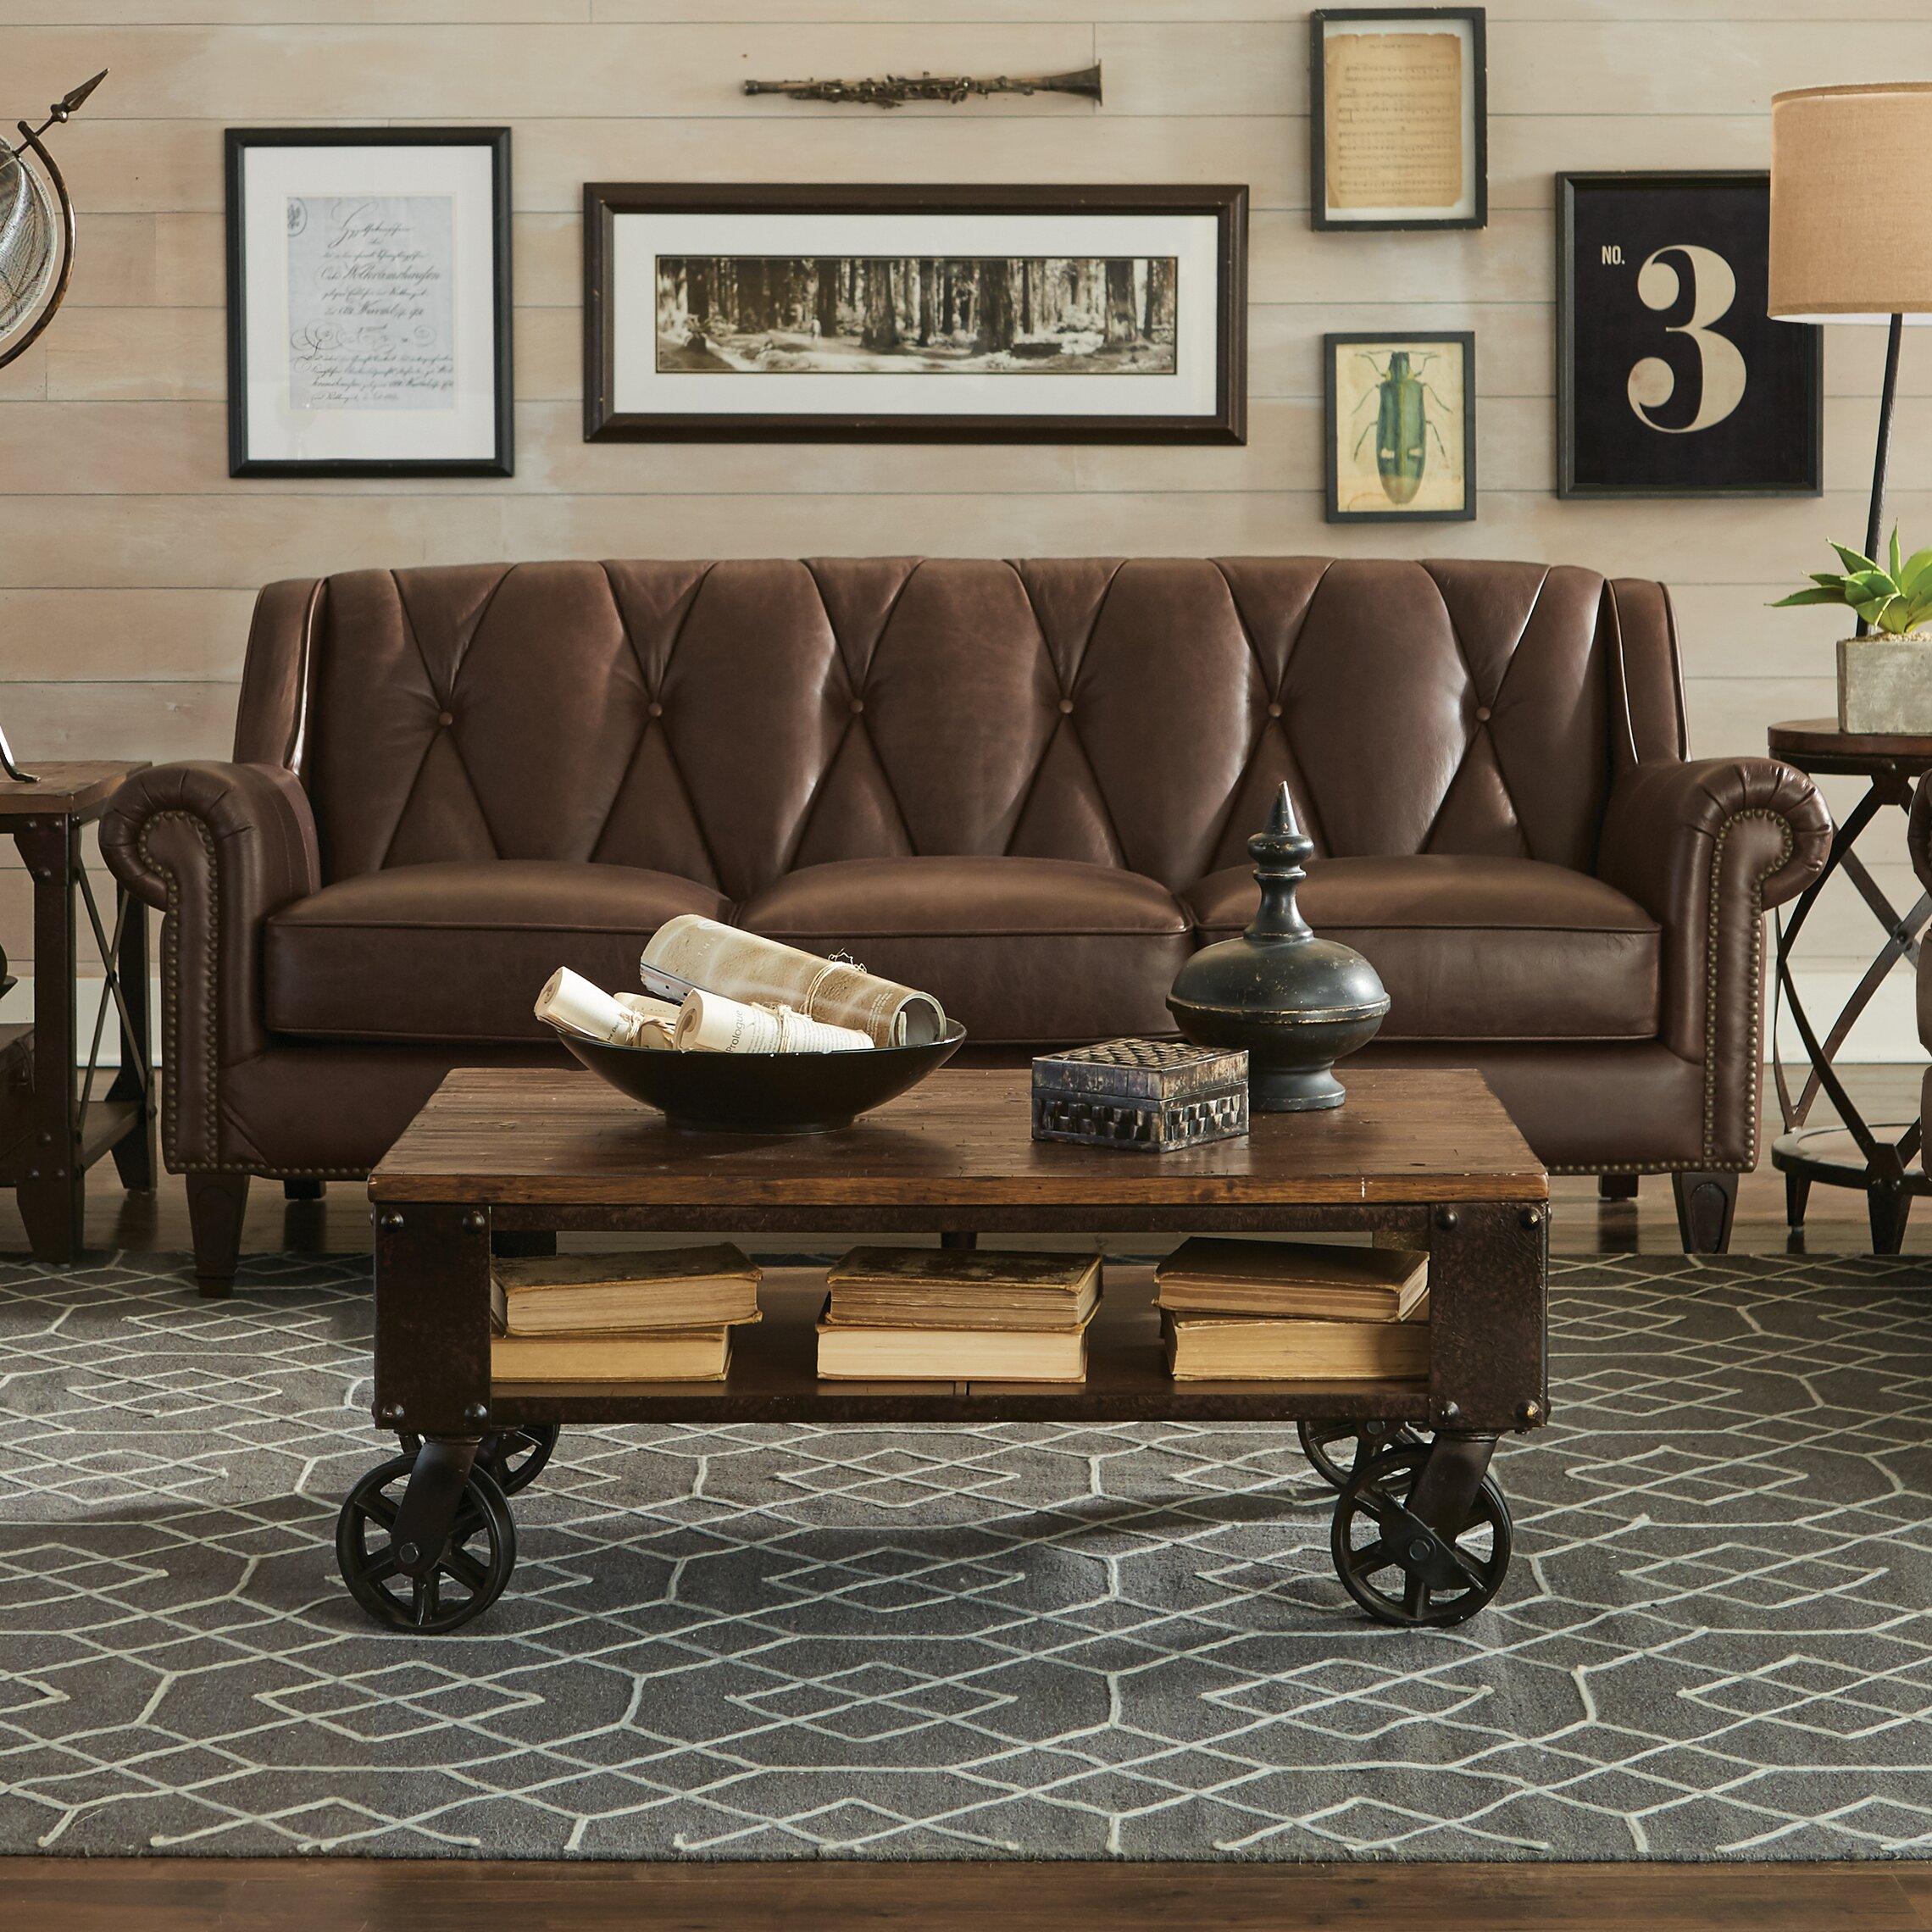 Captivating Lazzaro Leather Lucia Leather Sofa Wayfair .